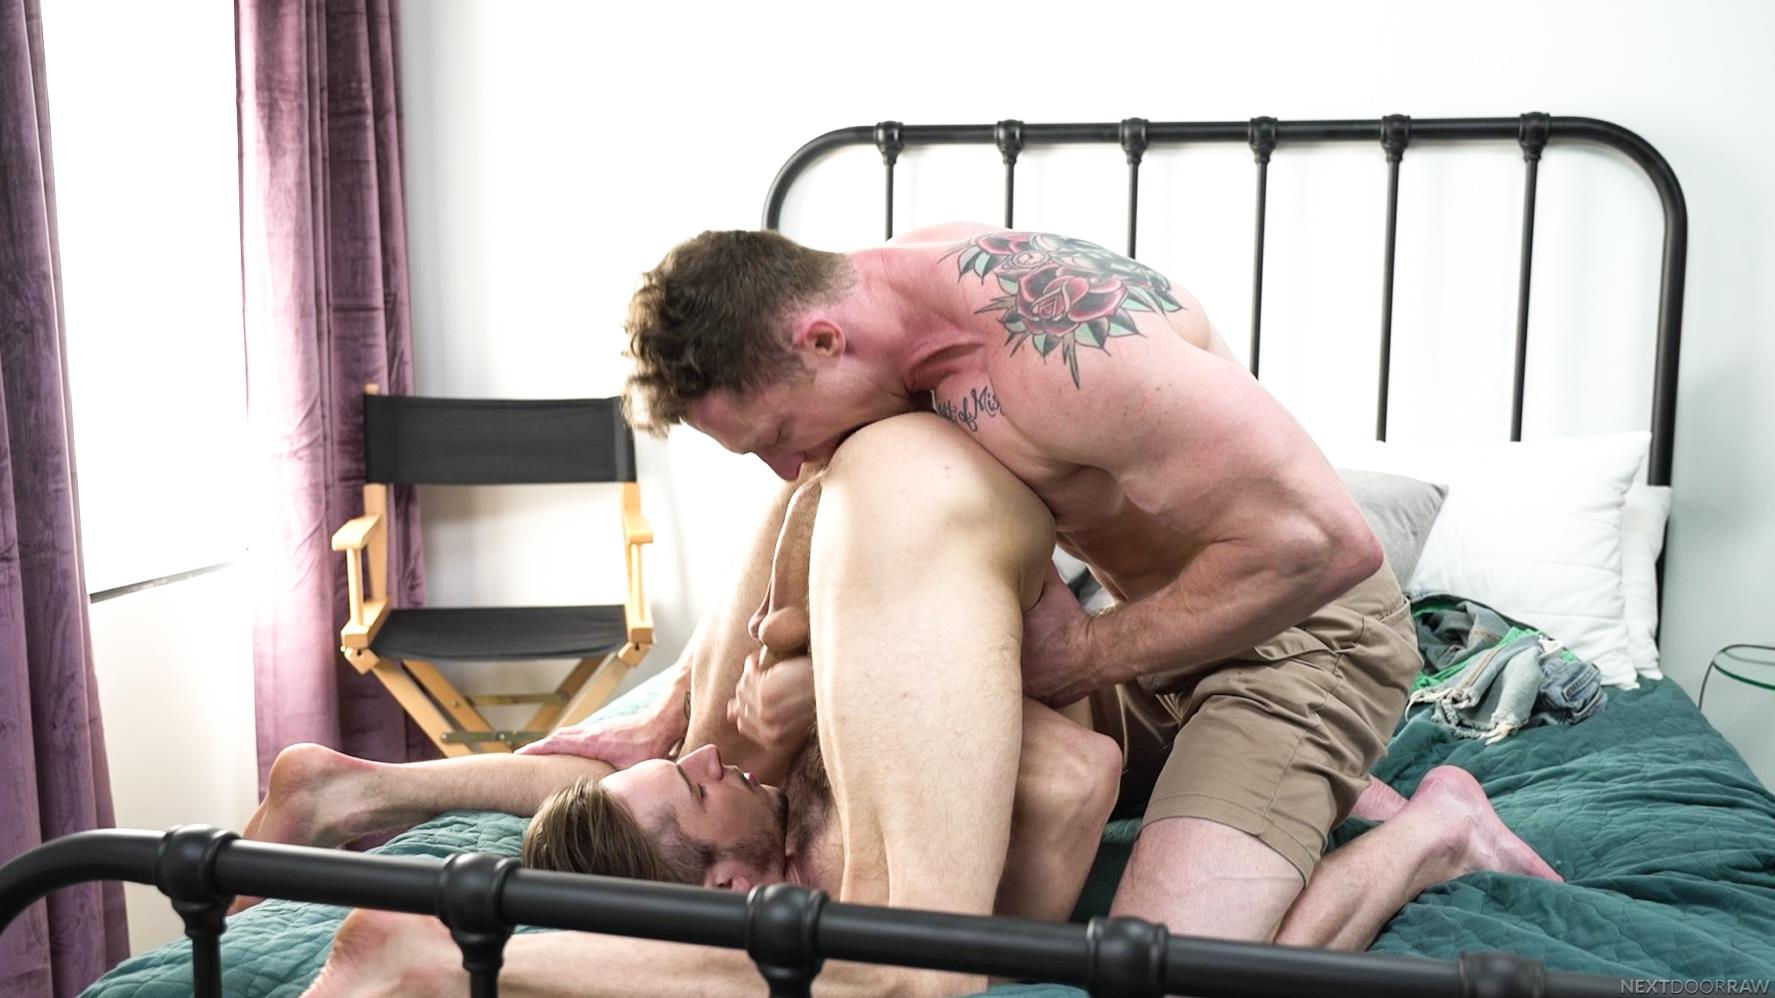 Next-Door-Raw-Markie-More-and-Donte-Thick-Bareback-Flip-Sex-Video-06 Markie More and Donte Thick Bareback Flip Fucking